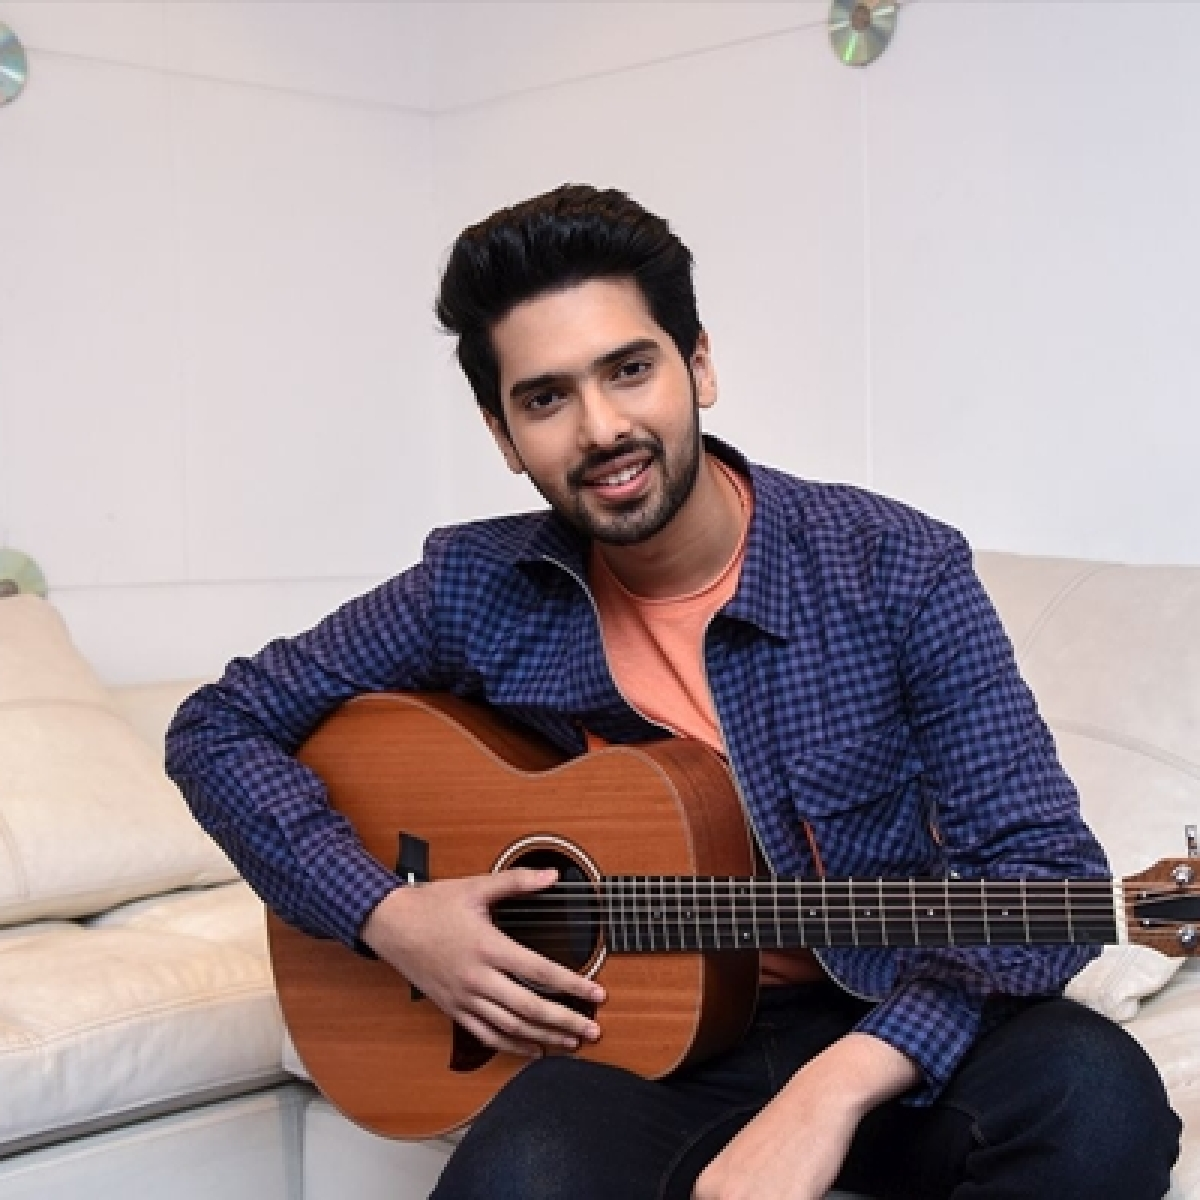 After leaving fans worried with cryptic post, Armaan Malik announces first English single 'Control'